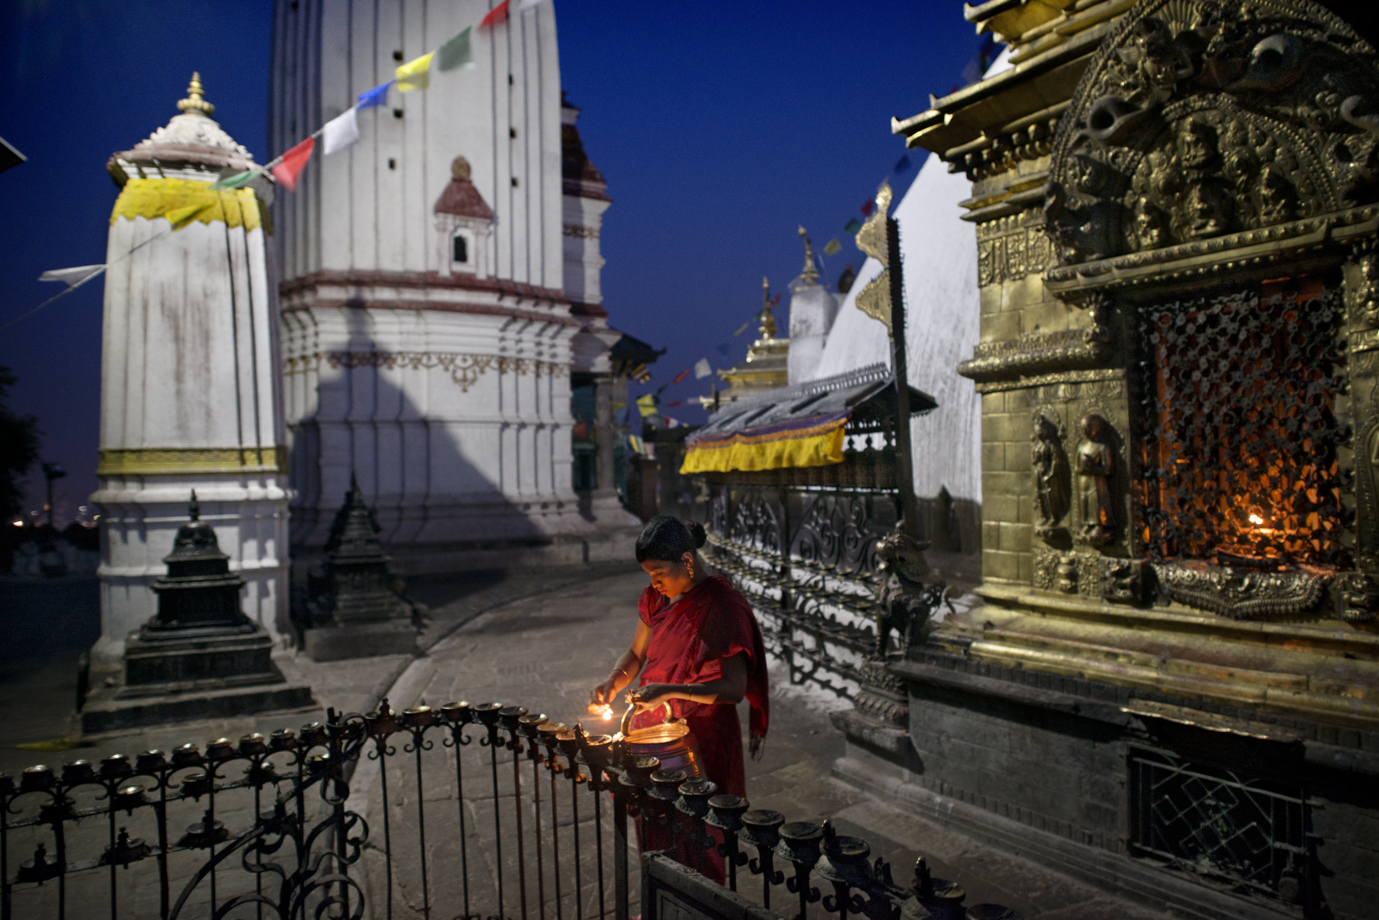 Women lighting candles at Swayambhunath Buddhist stupa, Kathmandu/ Nepal